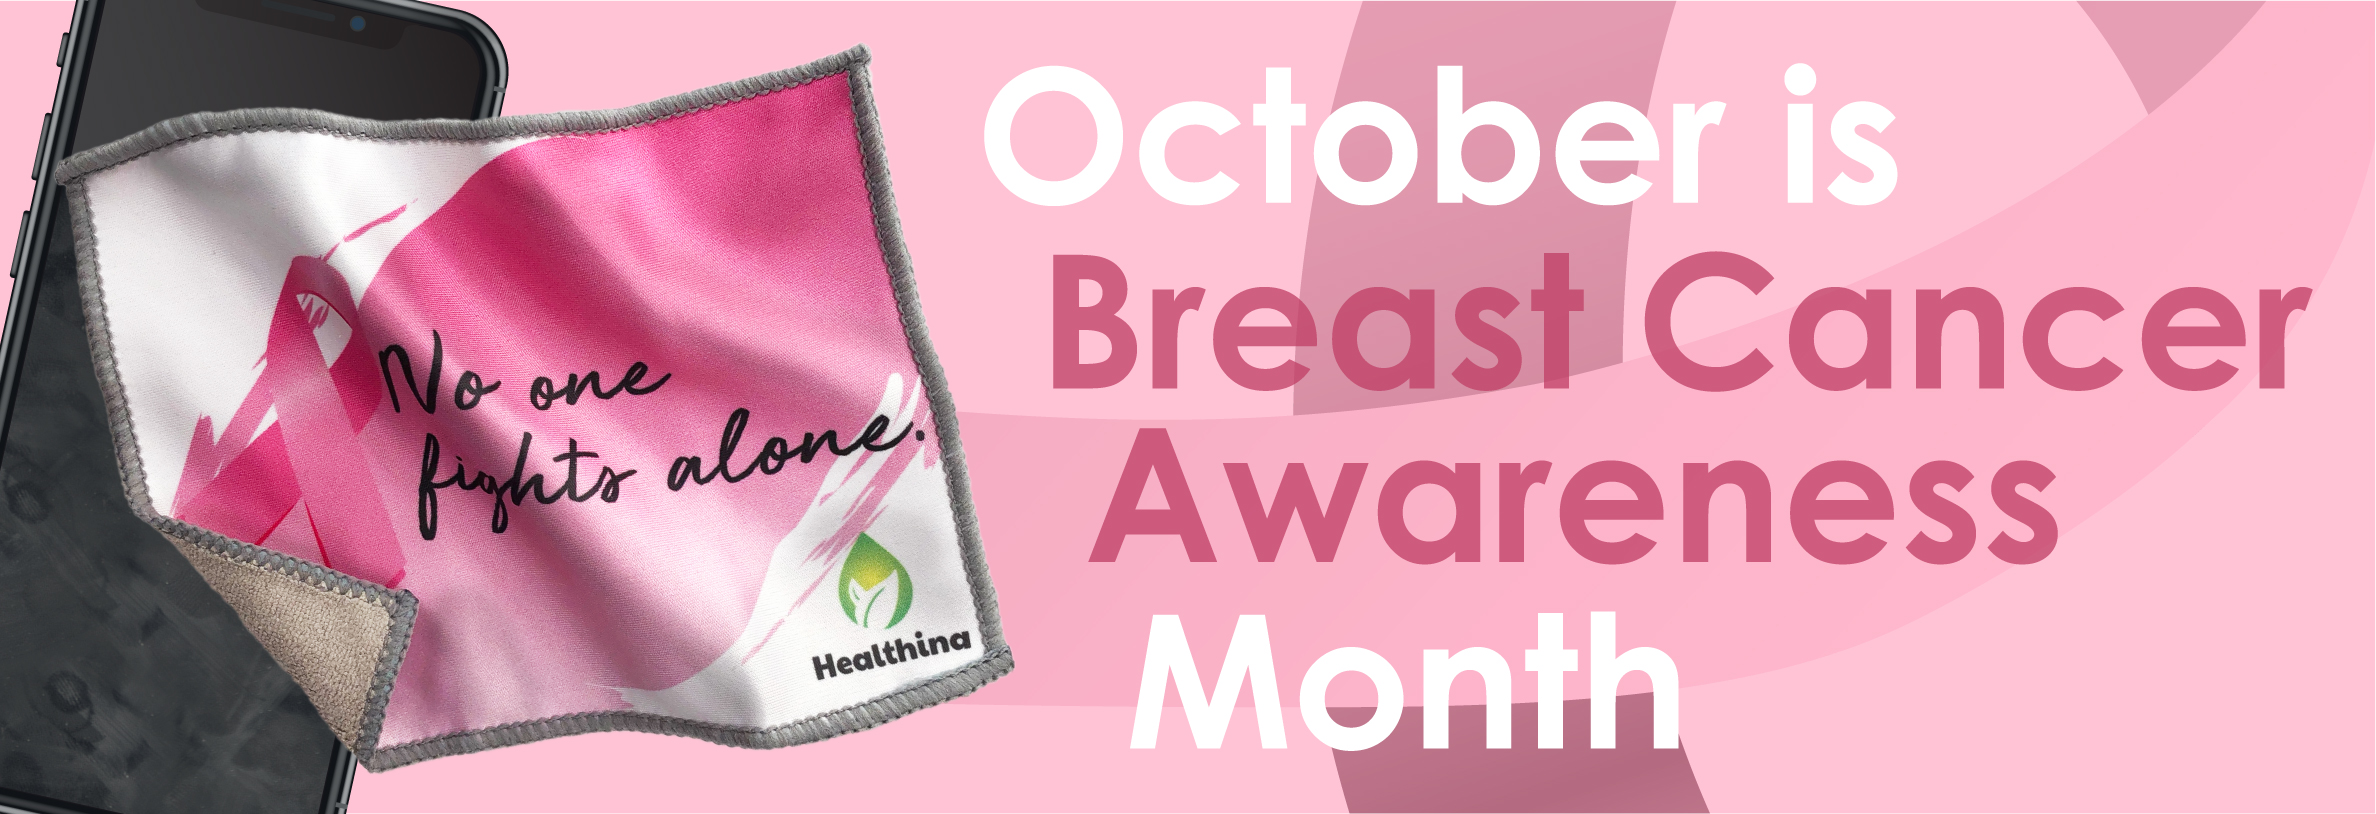 Breast Cancer Awareness Month Banner Image